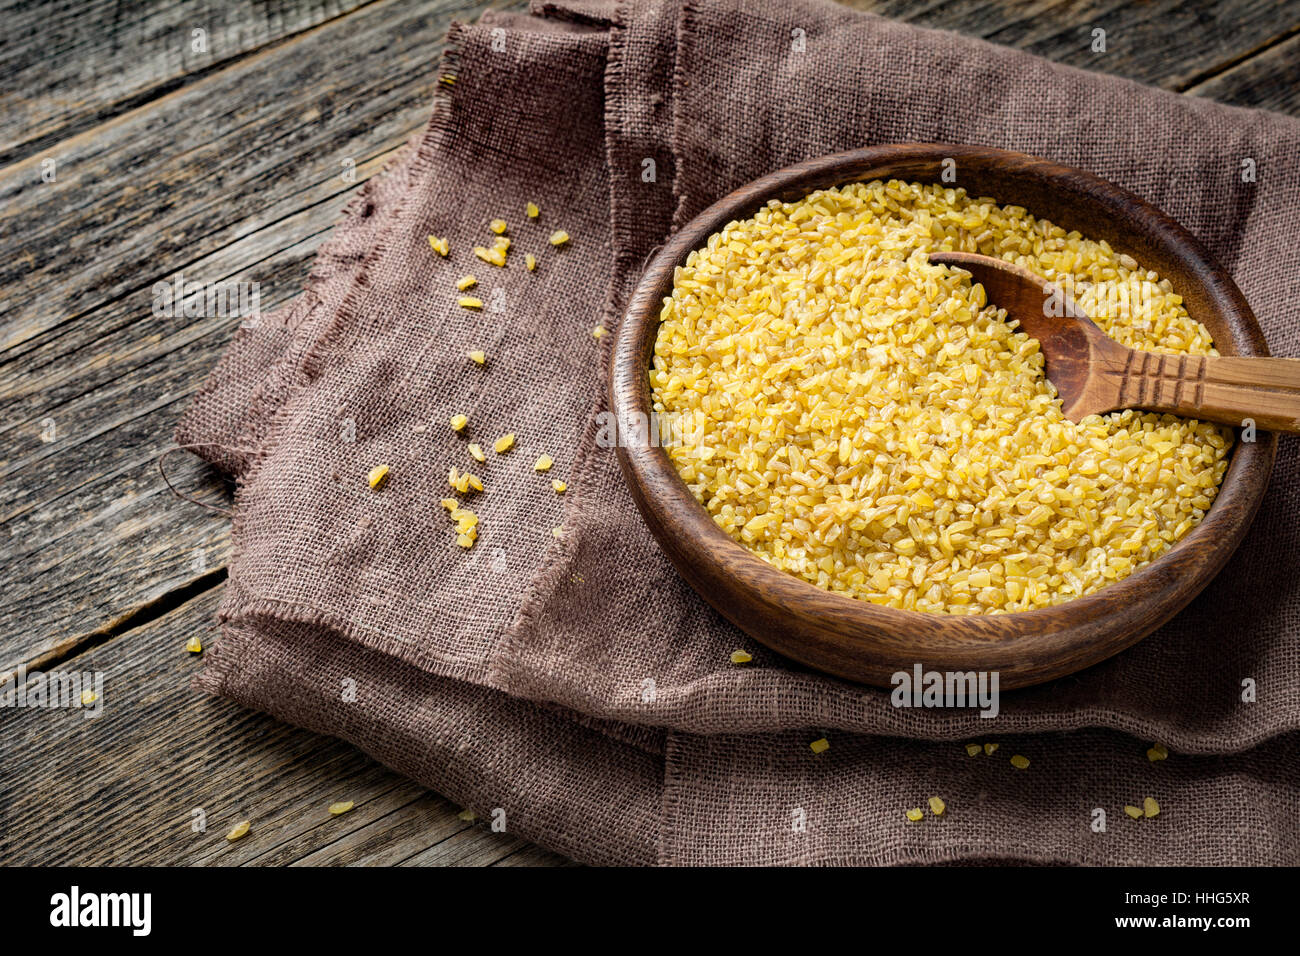 Uncooked bulgur in wooden bowl on wooden table background, rustic style. Bulgur wheat grains - Stock Image